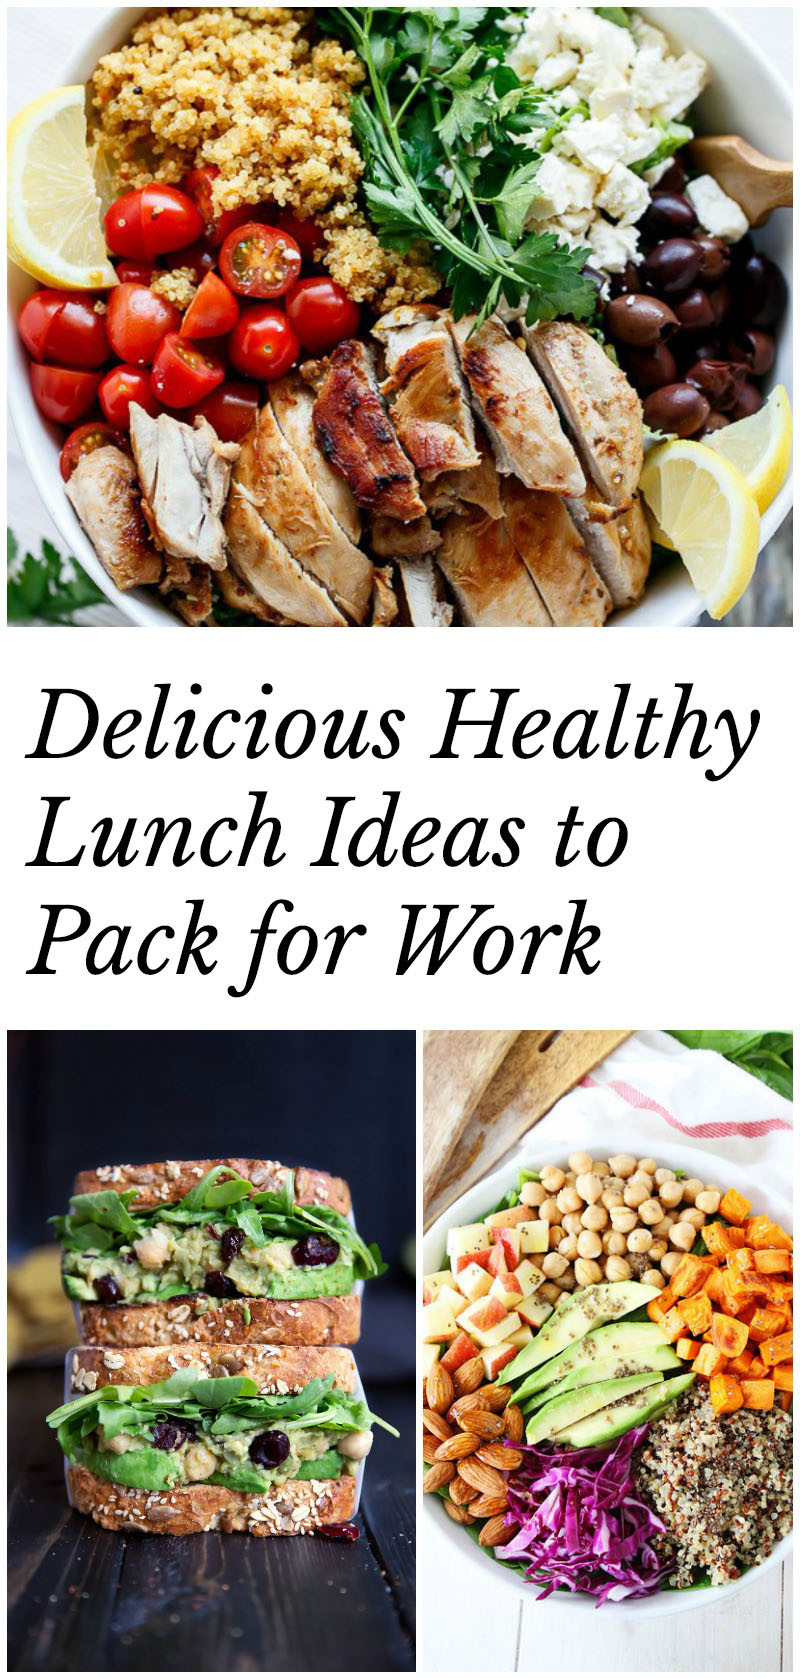 Good Healthy Lunches For Work  Healthy Lunch Ideas to Pack for Work 40 recipes